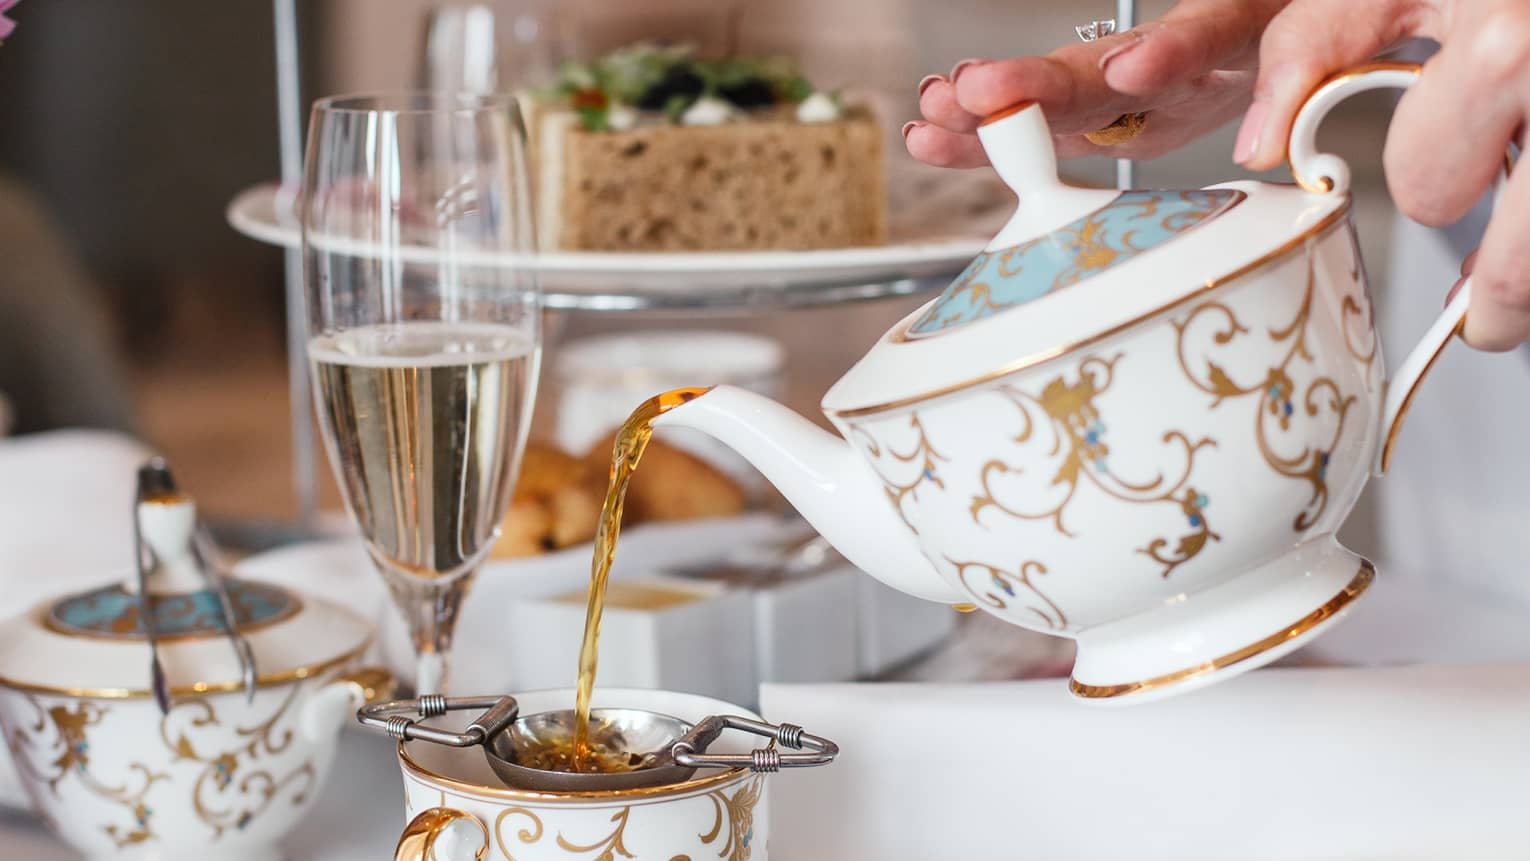 Hotel staff pours gold and white teapot by dessert tray at afternoon tea